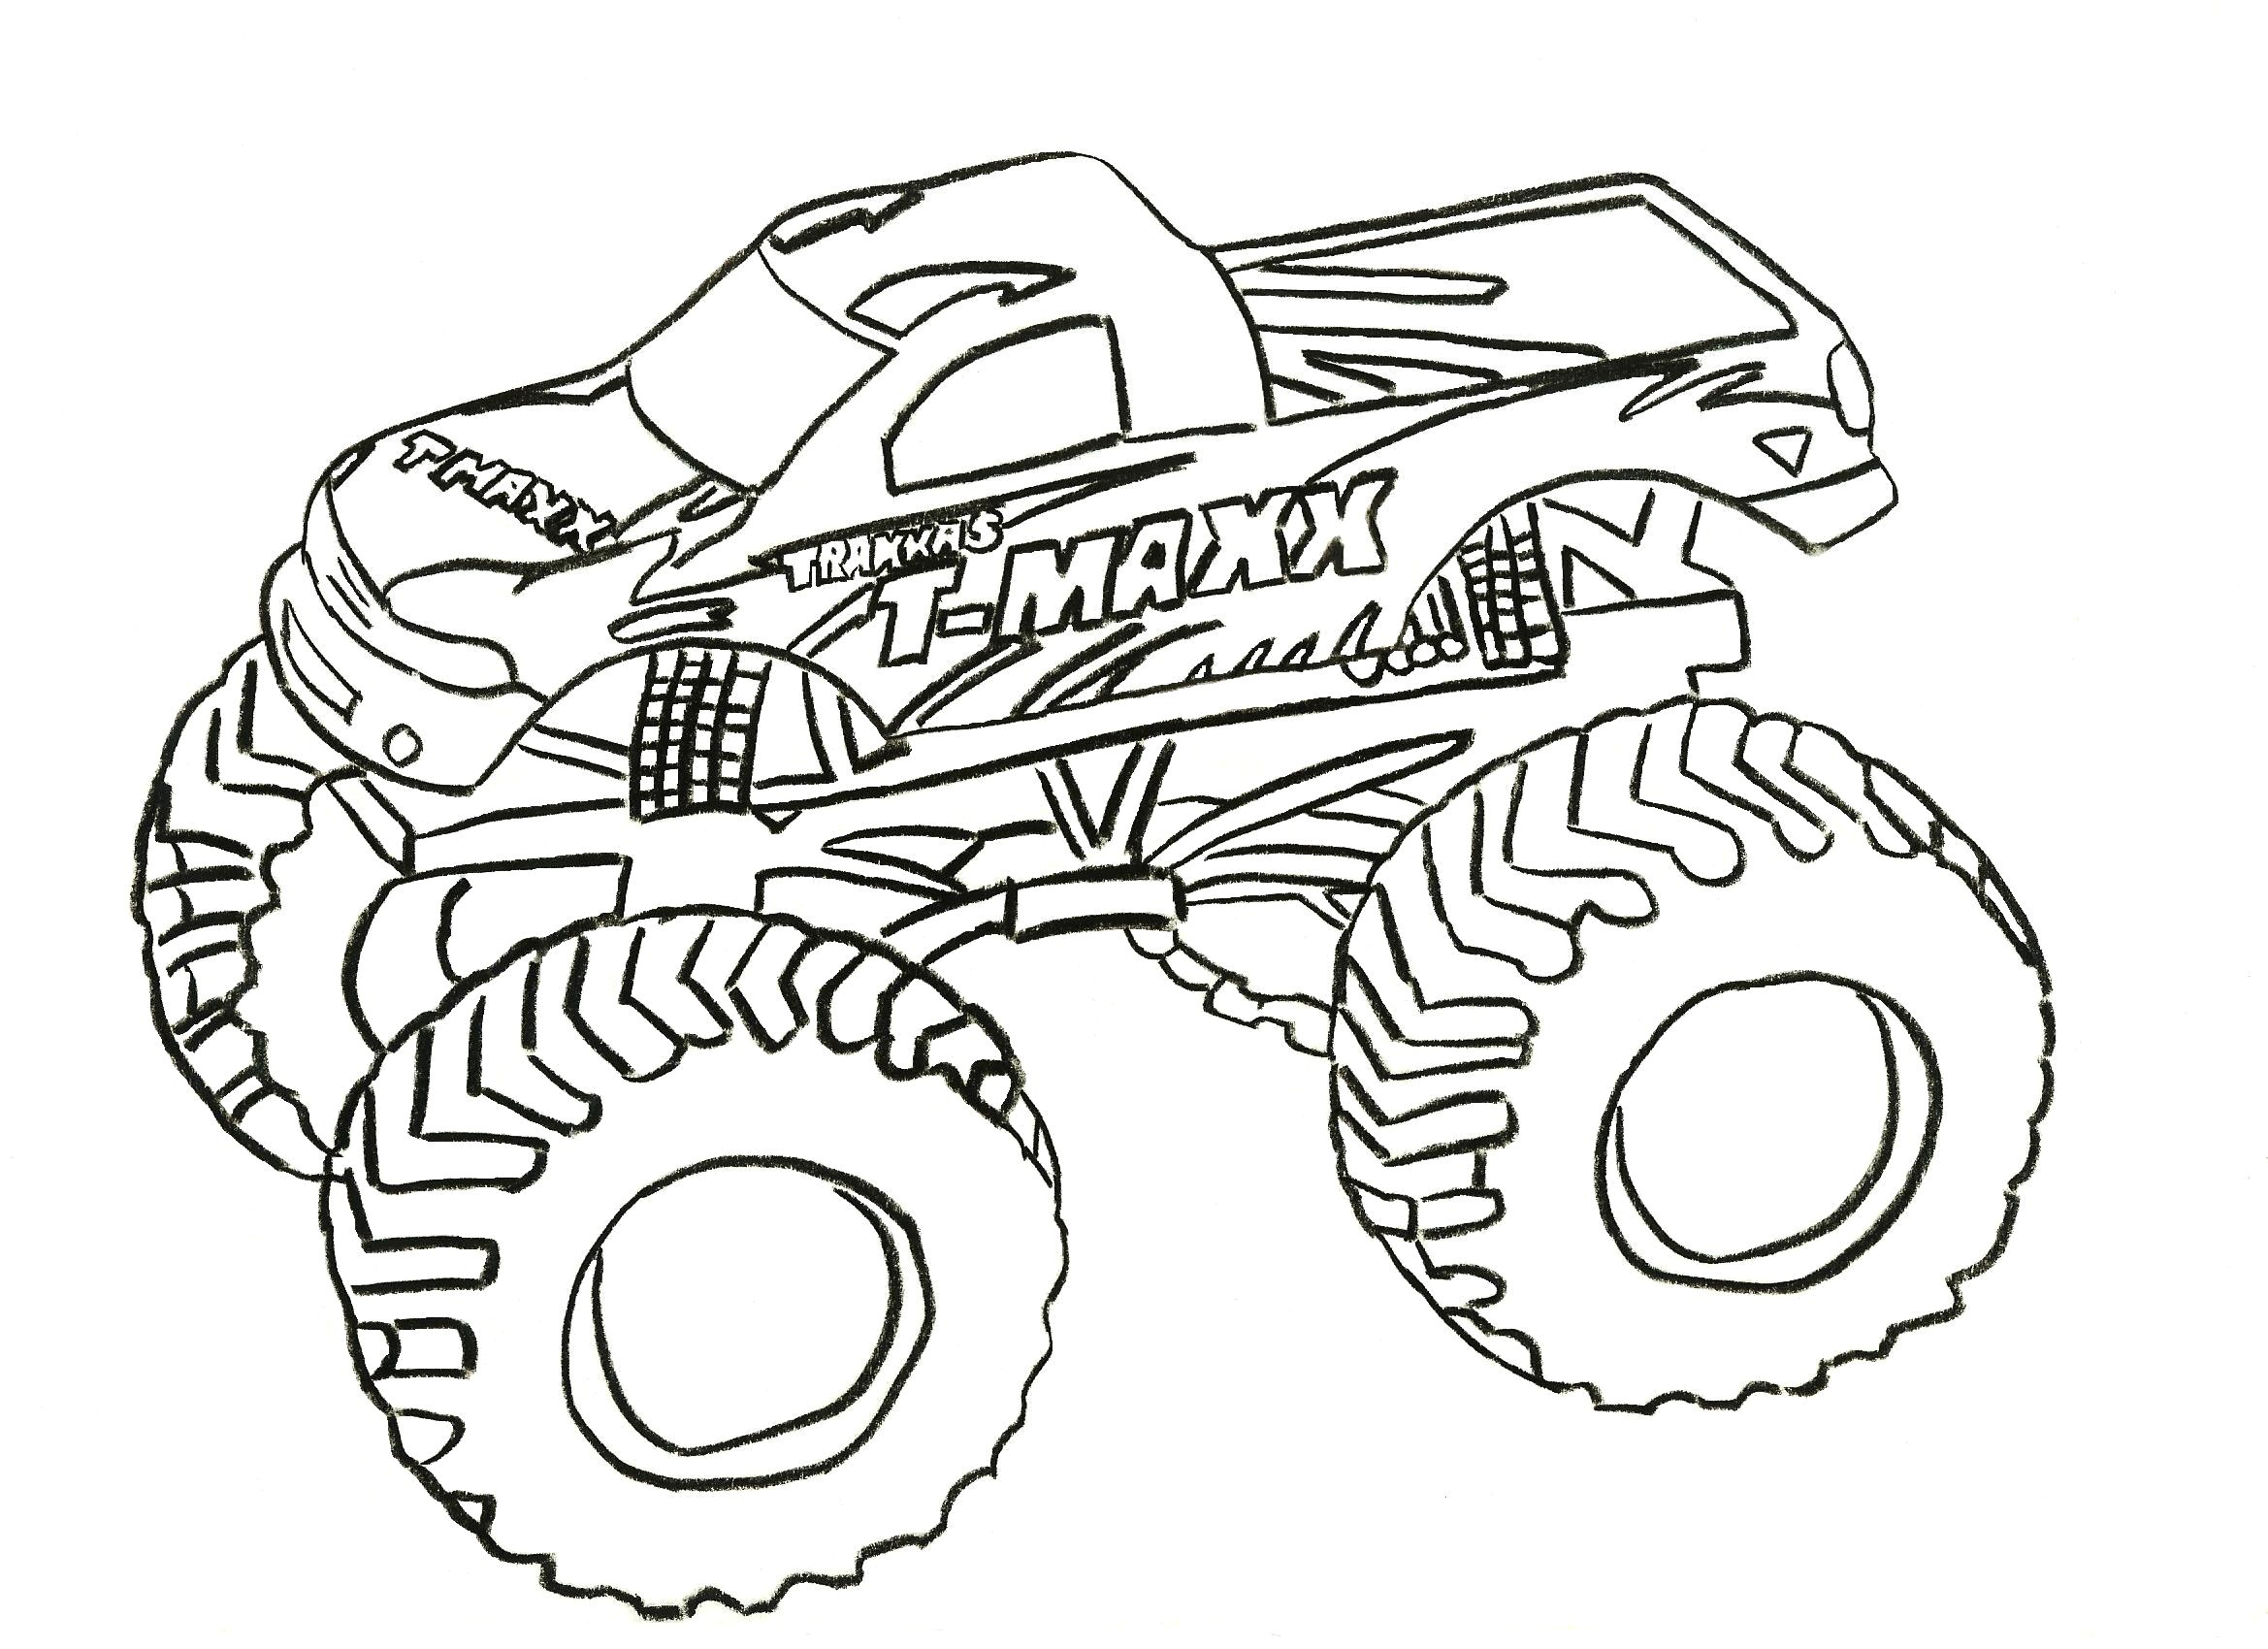 Adult Coloring Pages Trucks Monster Truck Coloring Pages Trucks P Telematik Institut